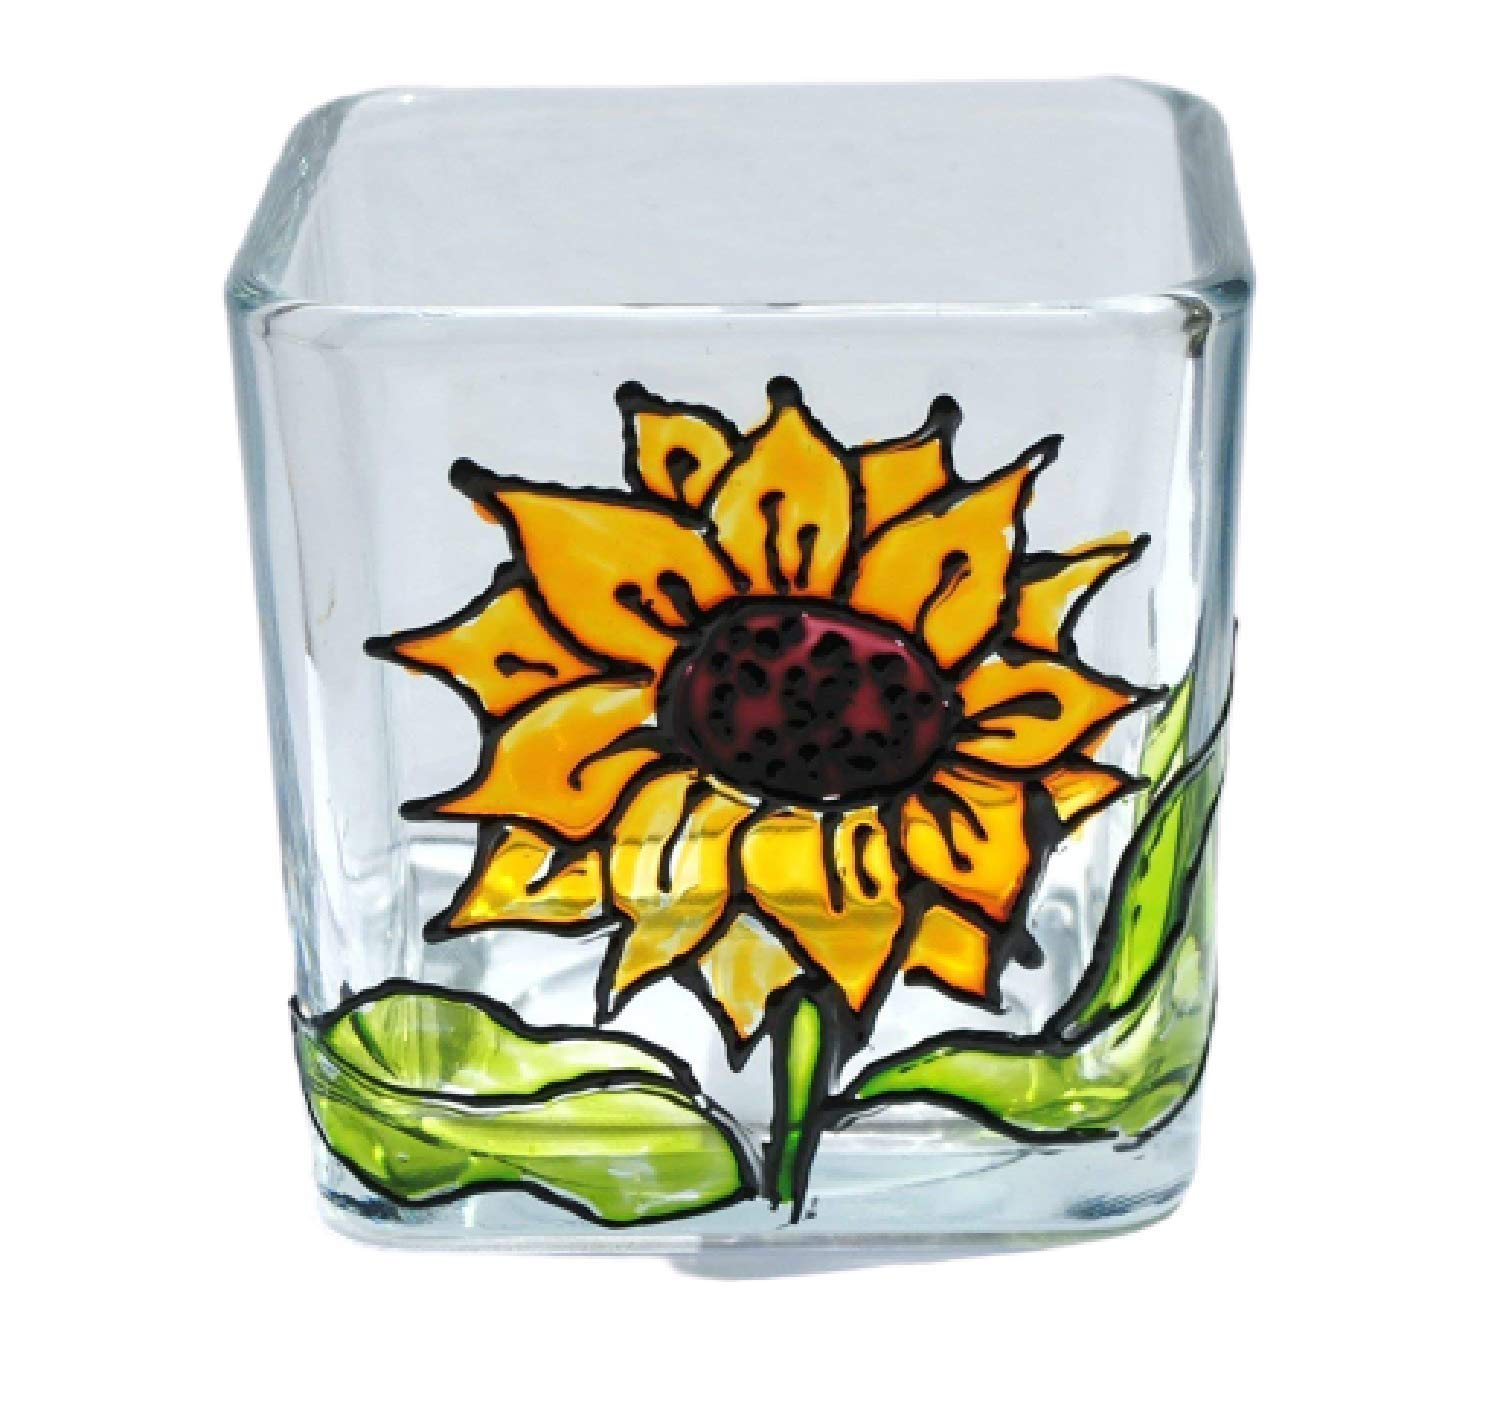 Yellow Our shop most popular Sunflower Hand Painted Stained Glass Holder Square Max 74% OFF Candle